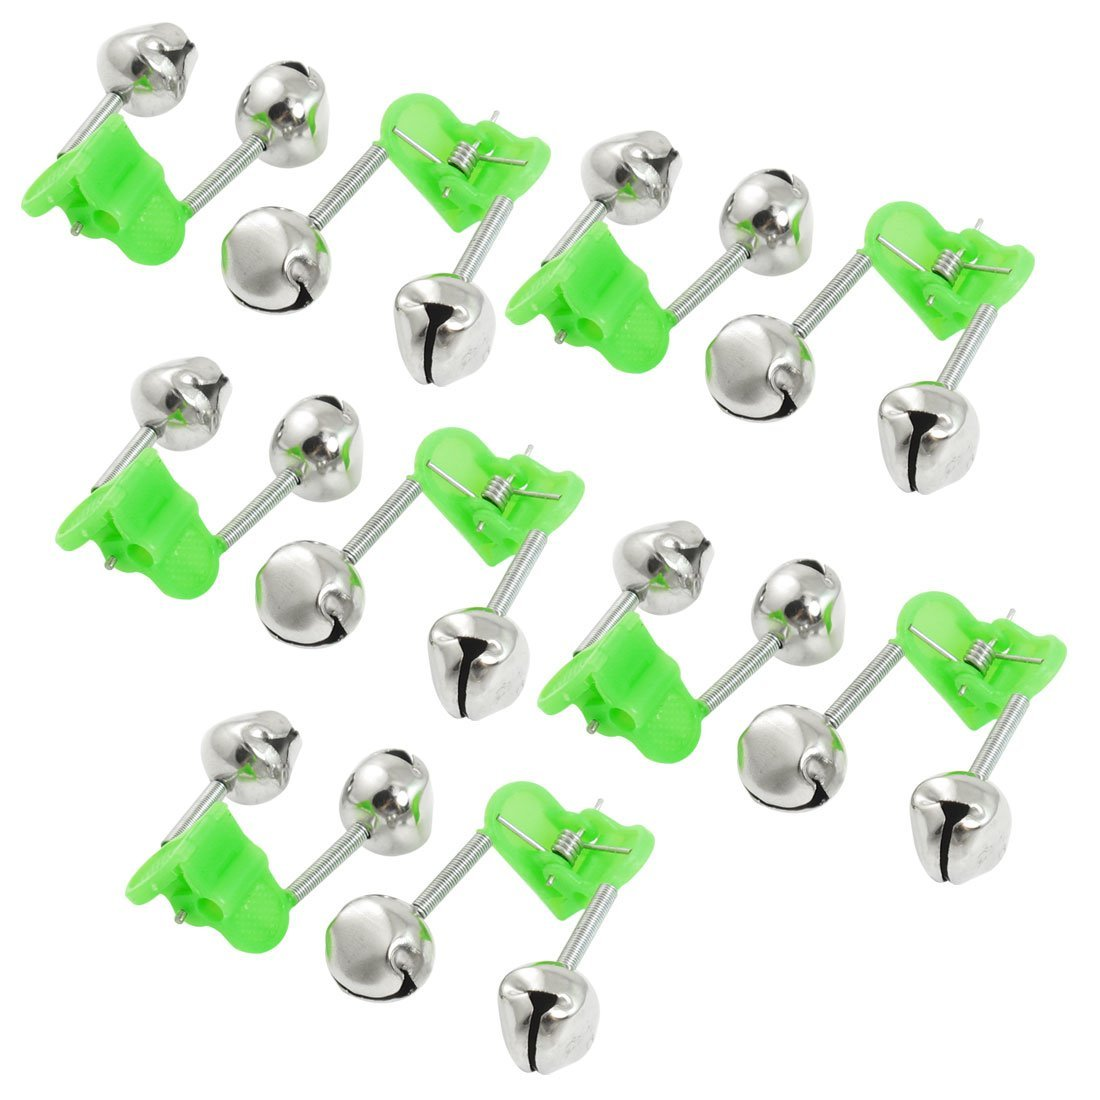 10 Pcs Green Spring Loaded Clip Double Fishing Rod Alarm Bells title=